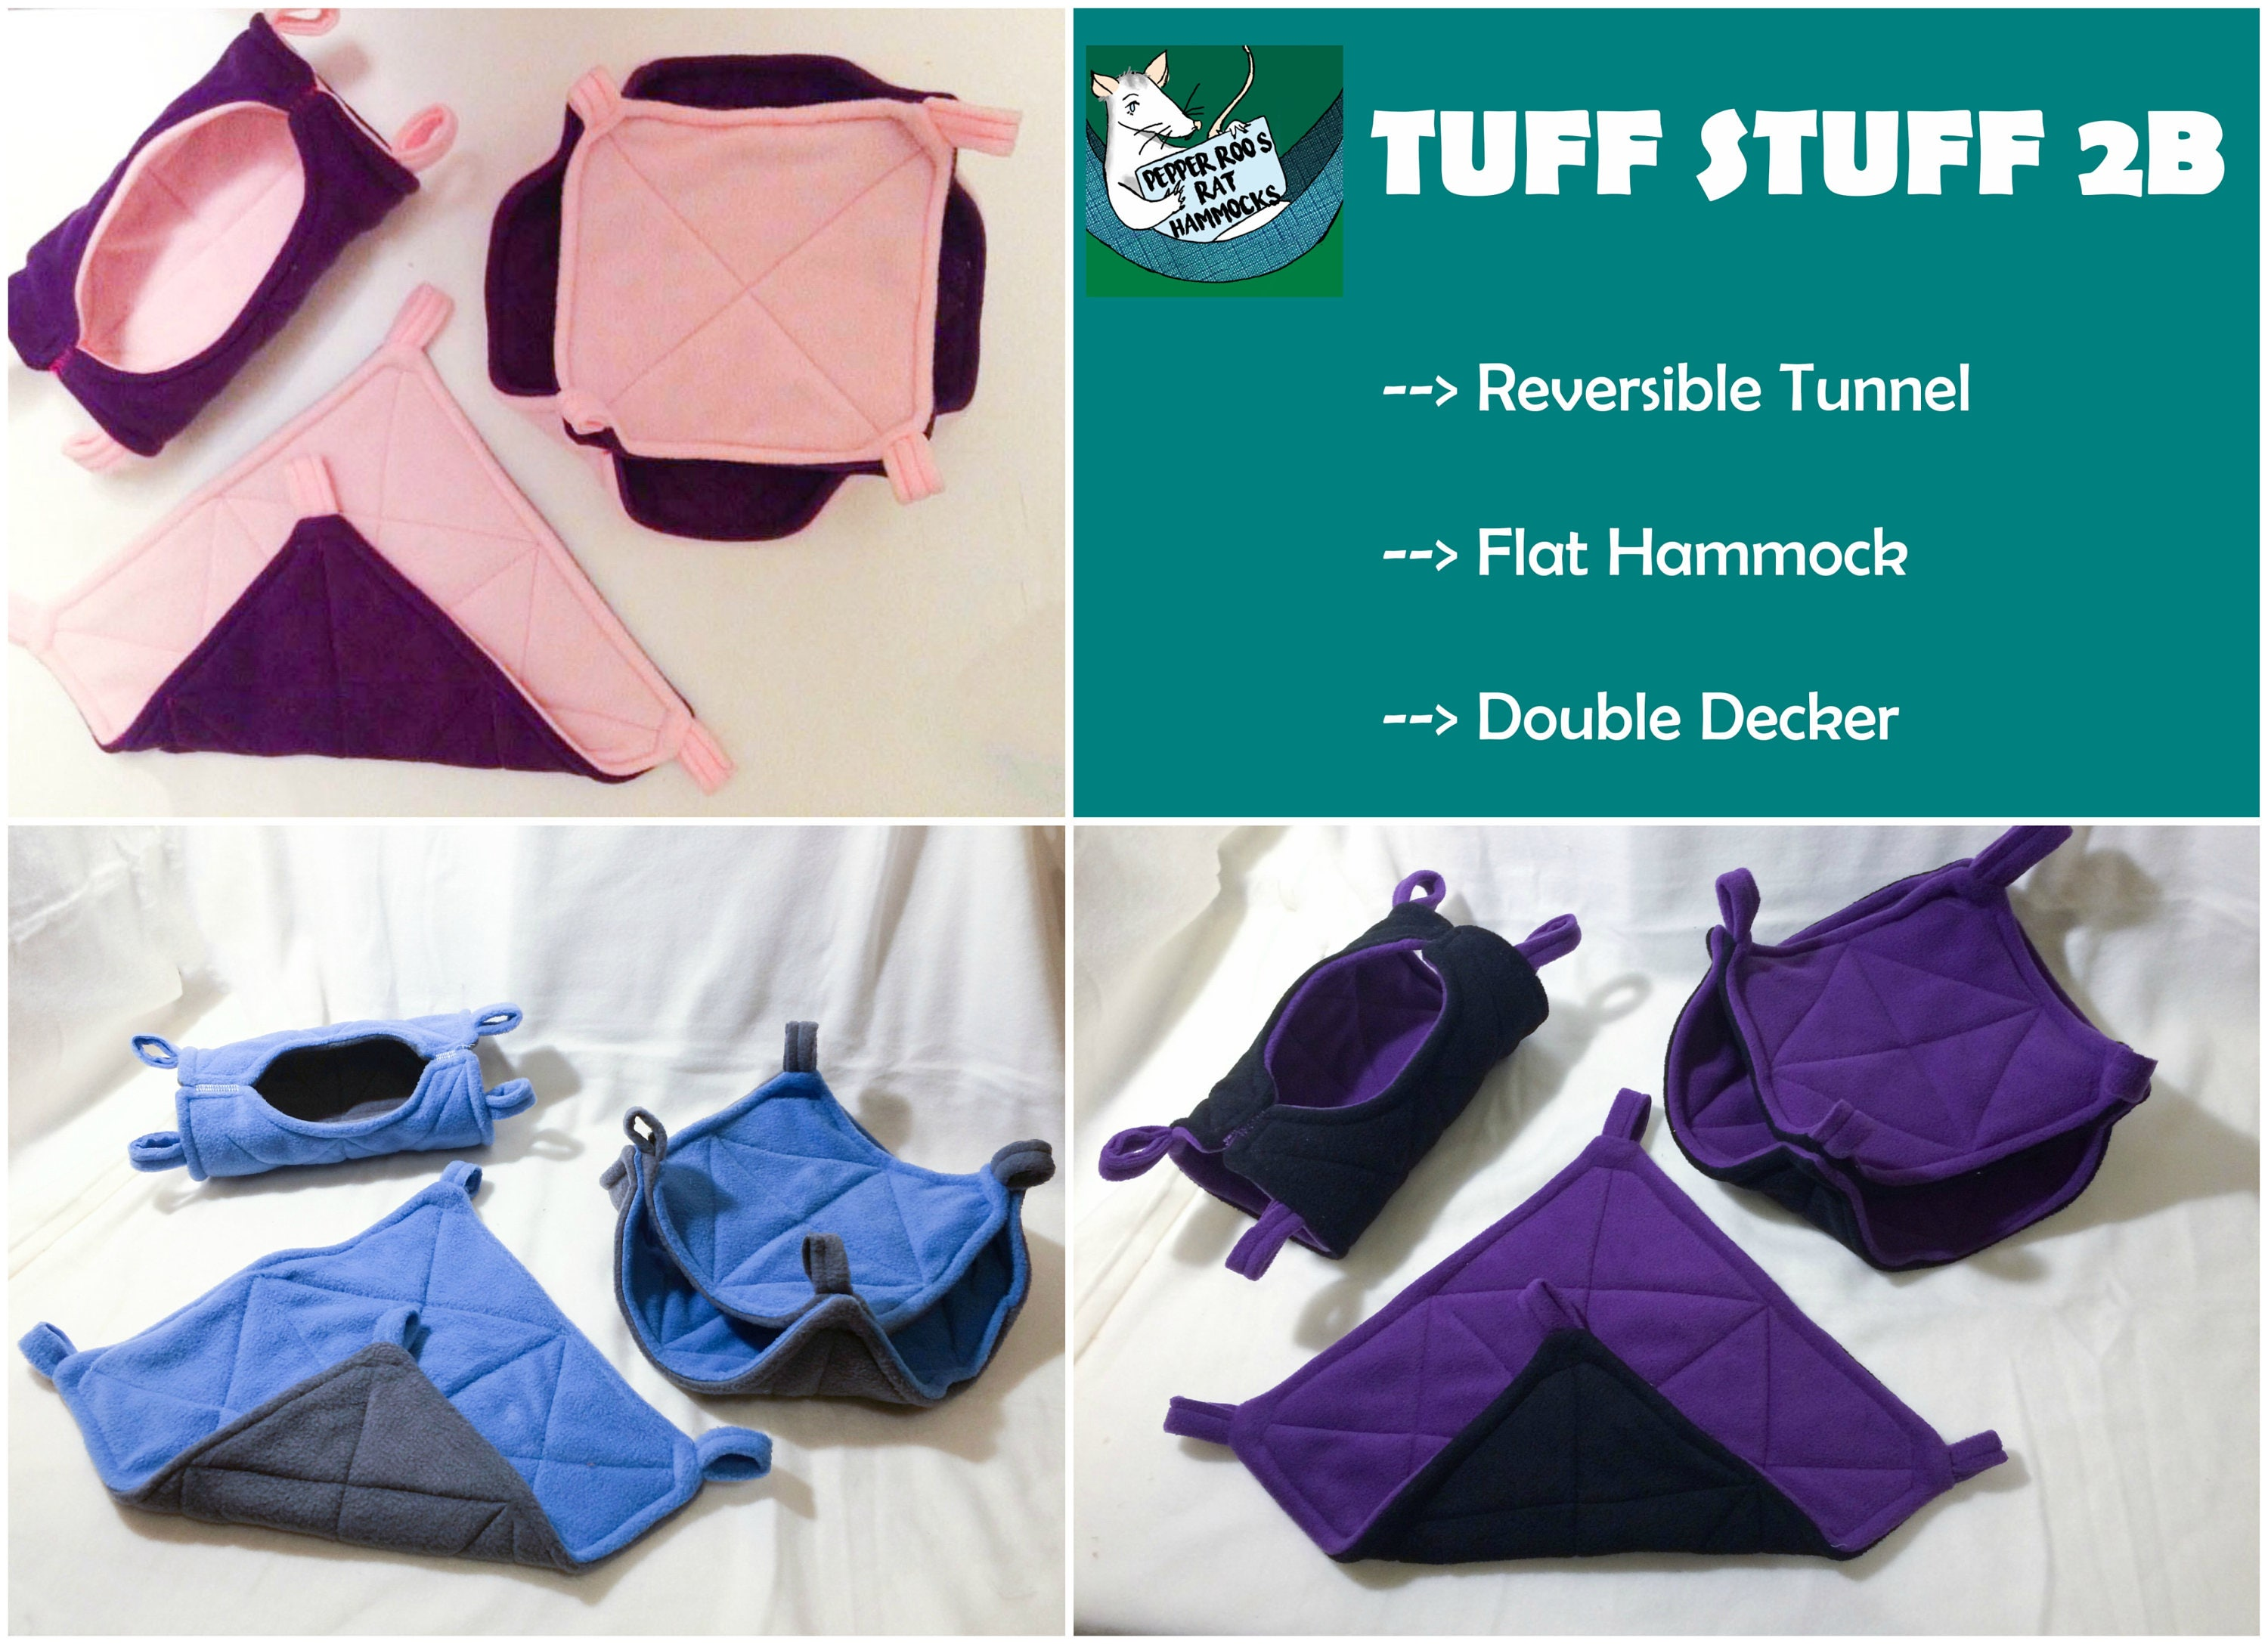 request a custom order and have something made just for you  custom made tuff stuff 2b rat hammocks set ferret sugar  rh   etsy